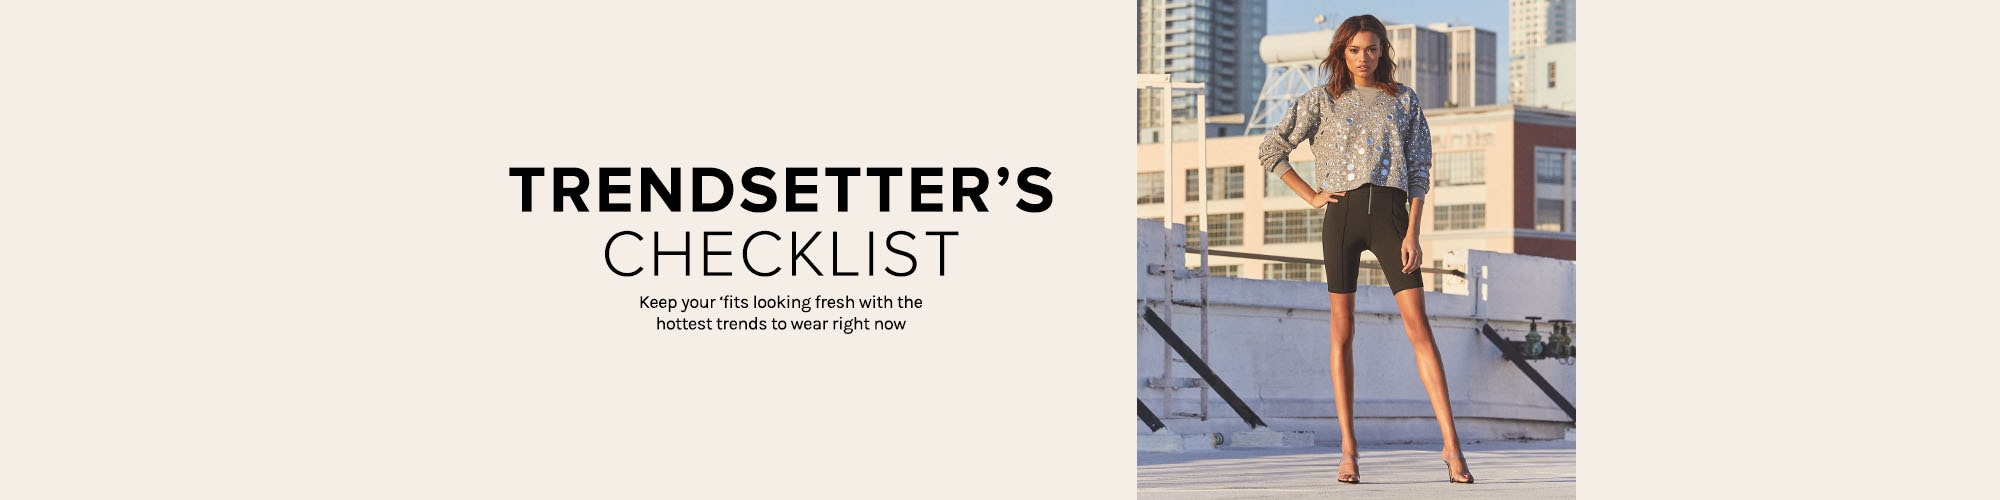 TRENDSETTER\u2019S CHECKLIST. Keep your \u2018fits looking fresh with the hottest trends to wear right now.